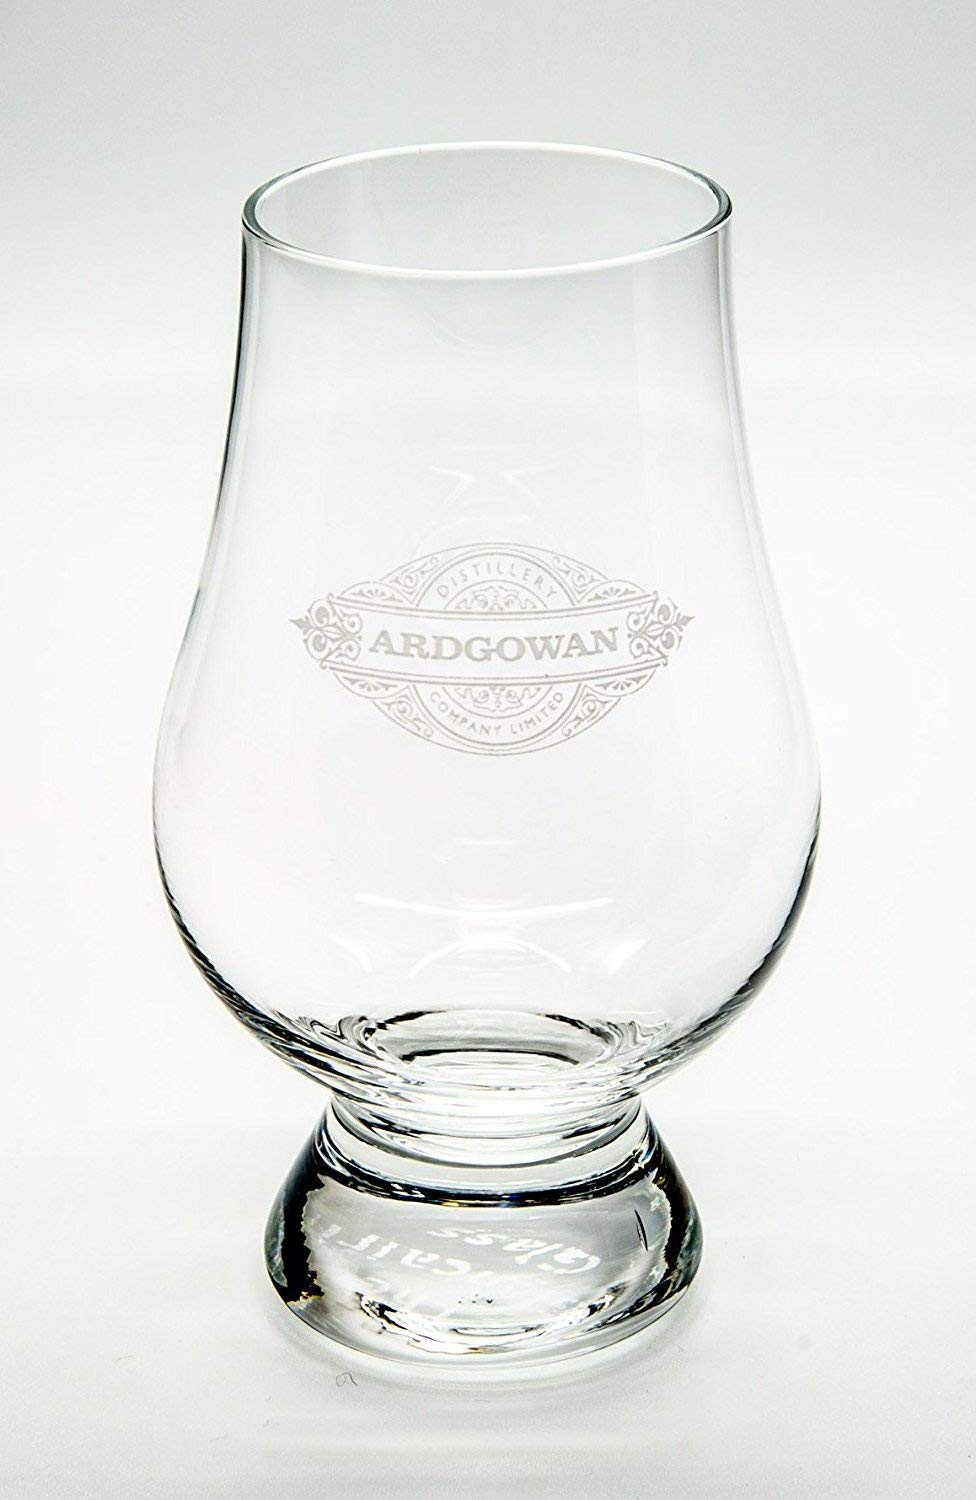 Ardgowan Distillery Glencairn Whisky Glass Glencairn Crystal Studio Ltd